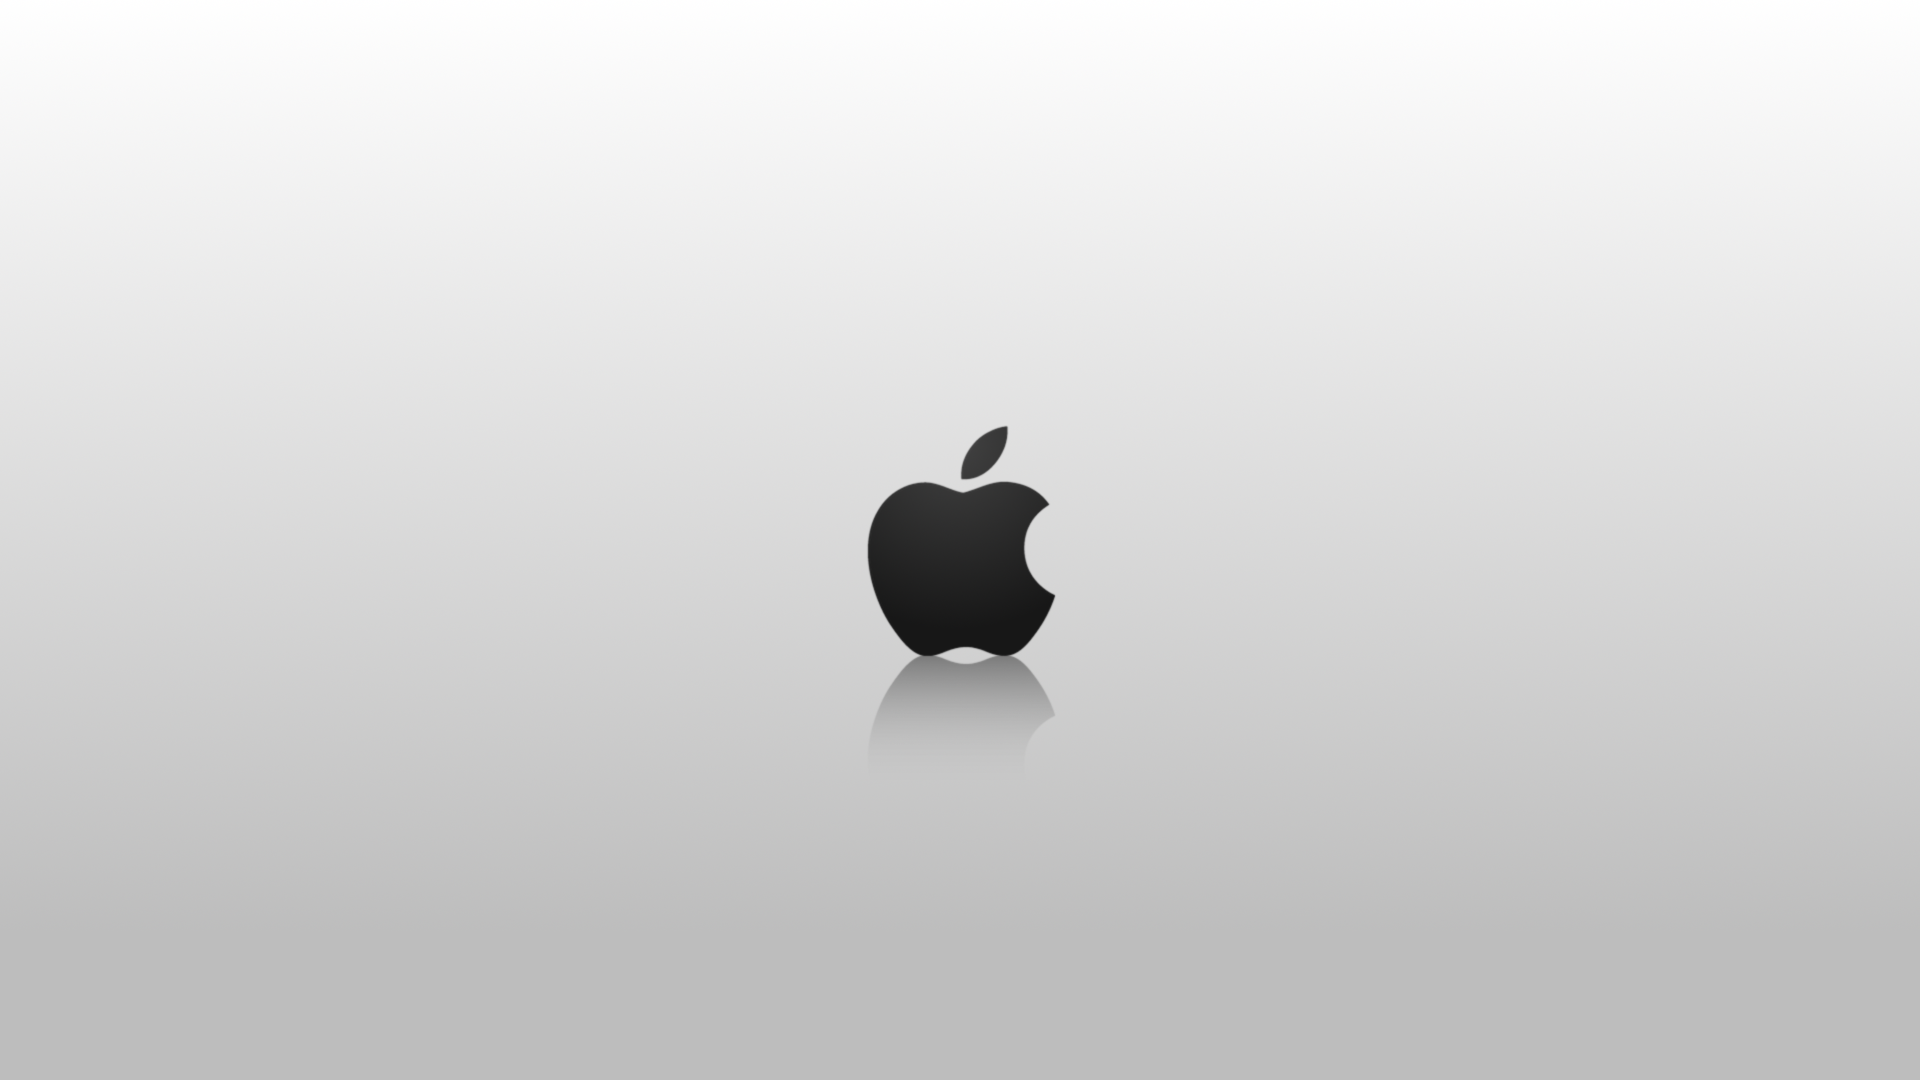 apple simple logo, hd logo, 4k wallpapers, images, backgrounds